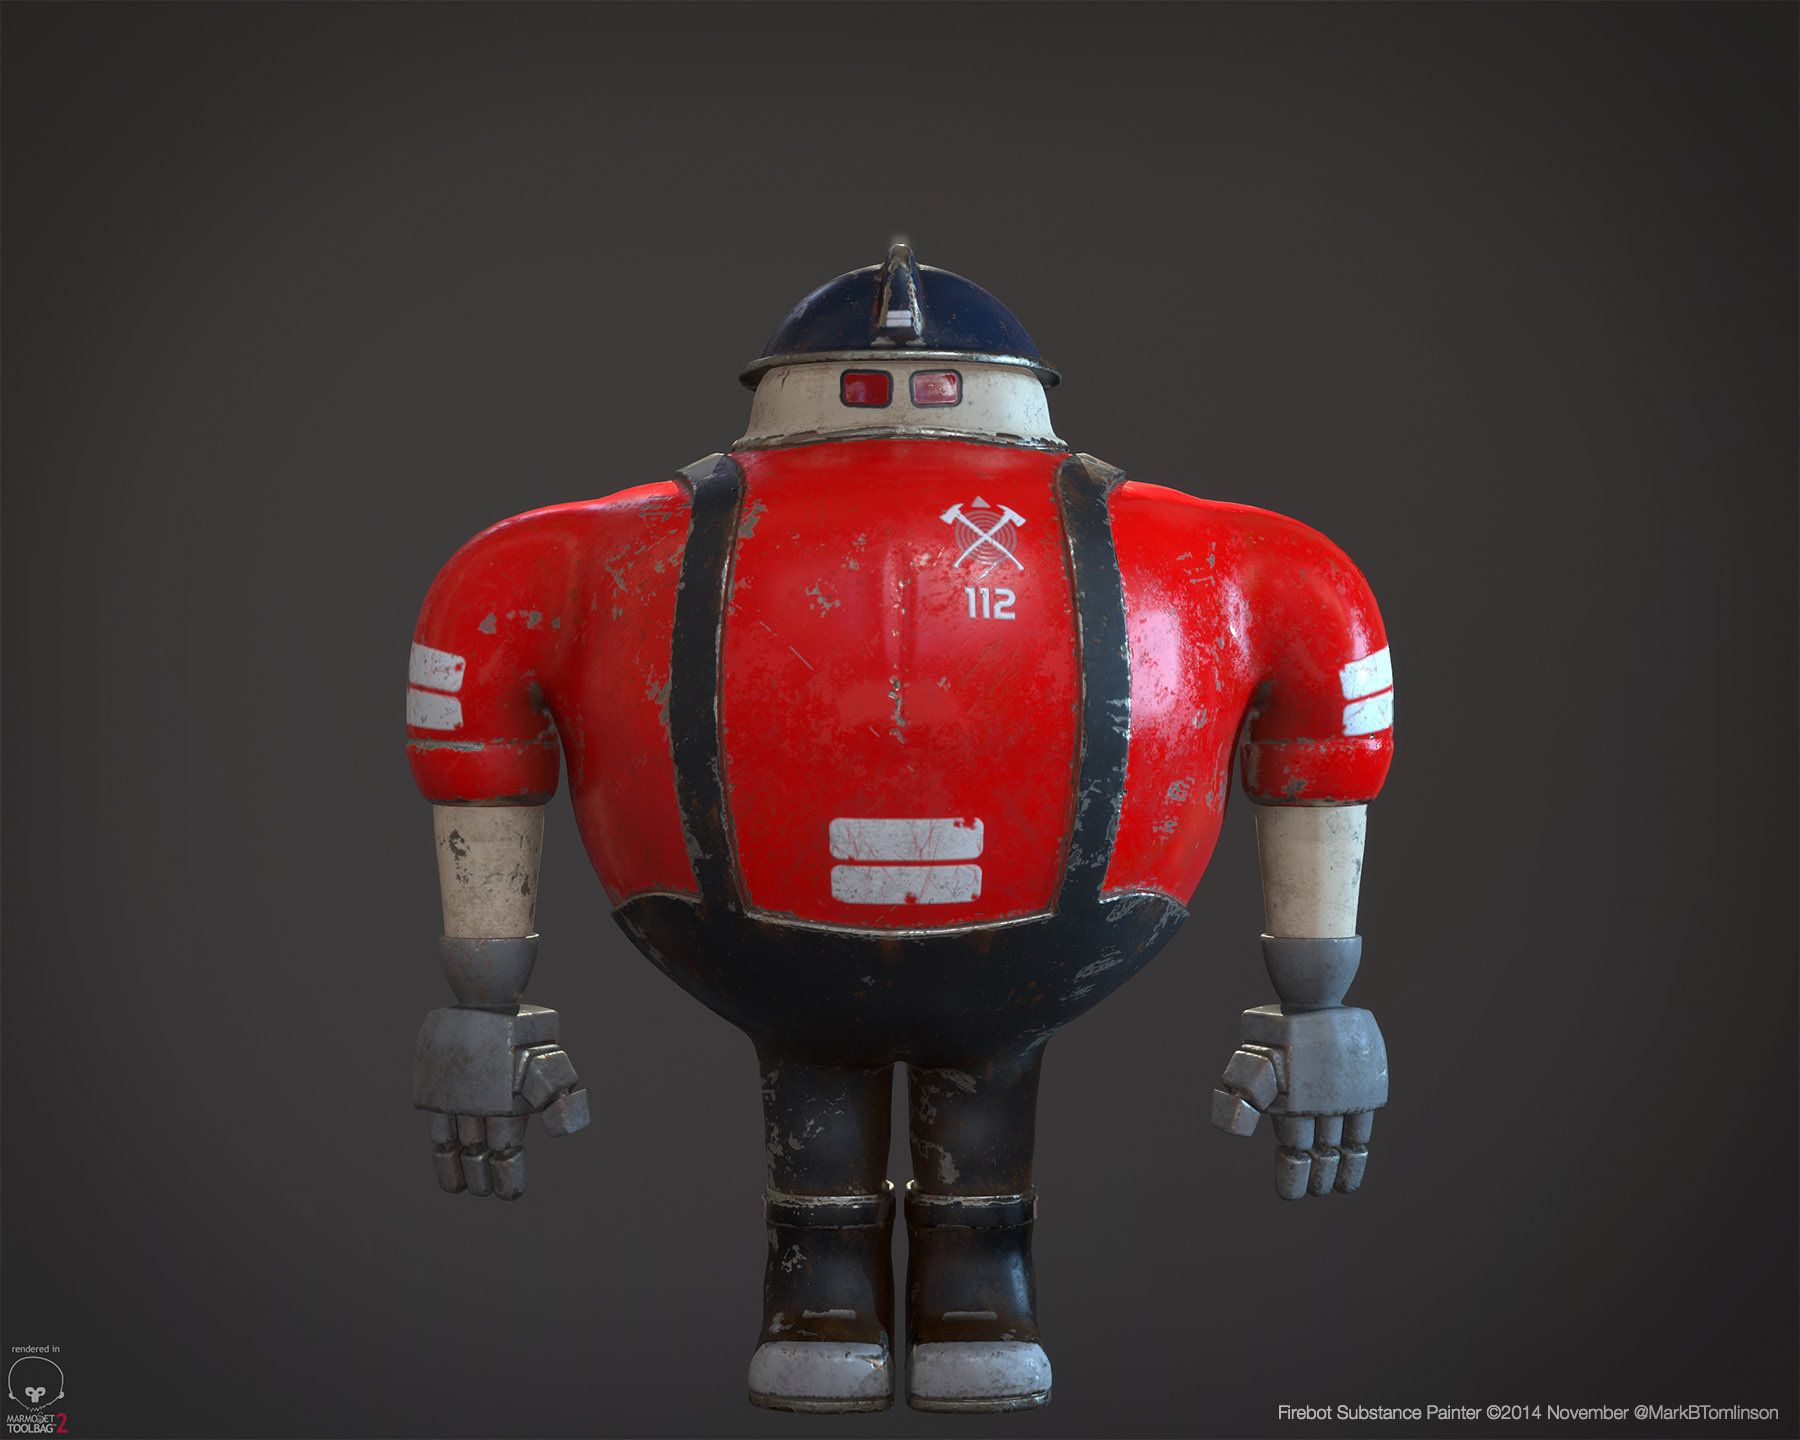 Mark b tomlinson firebot substance painter web 01